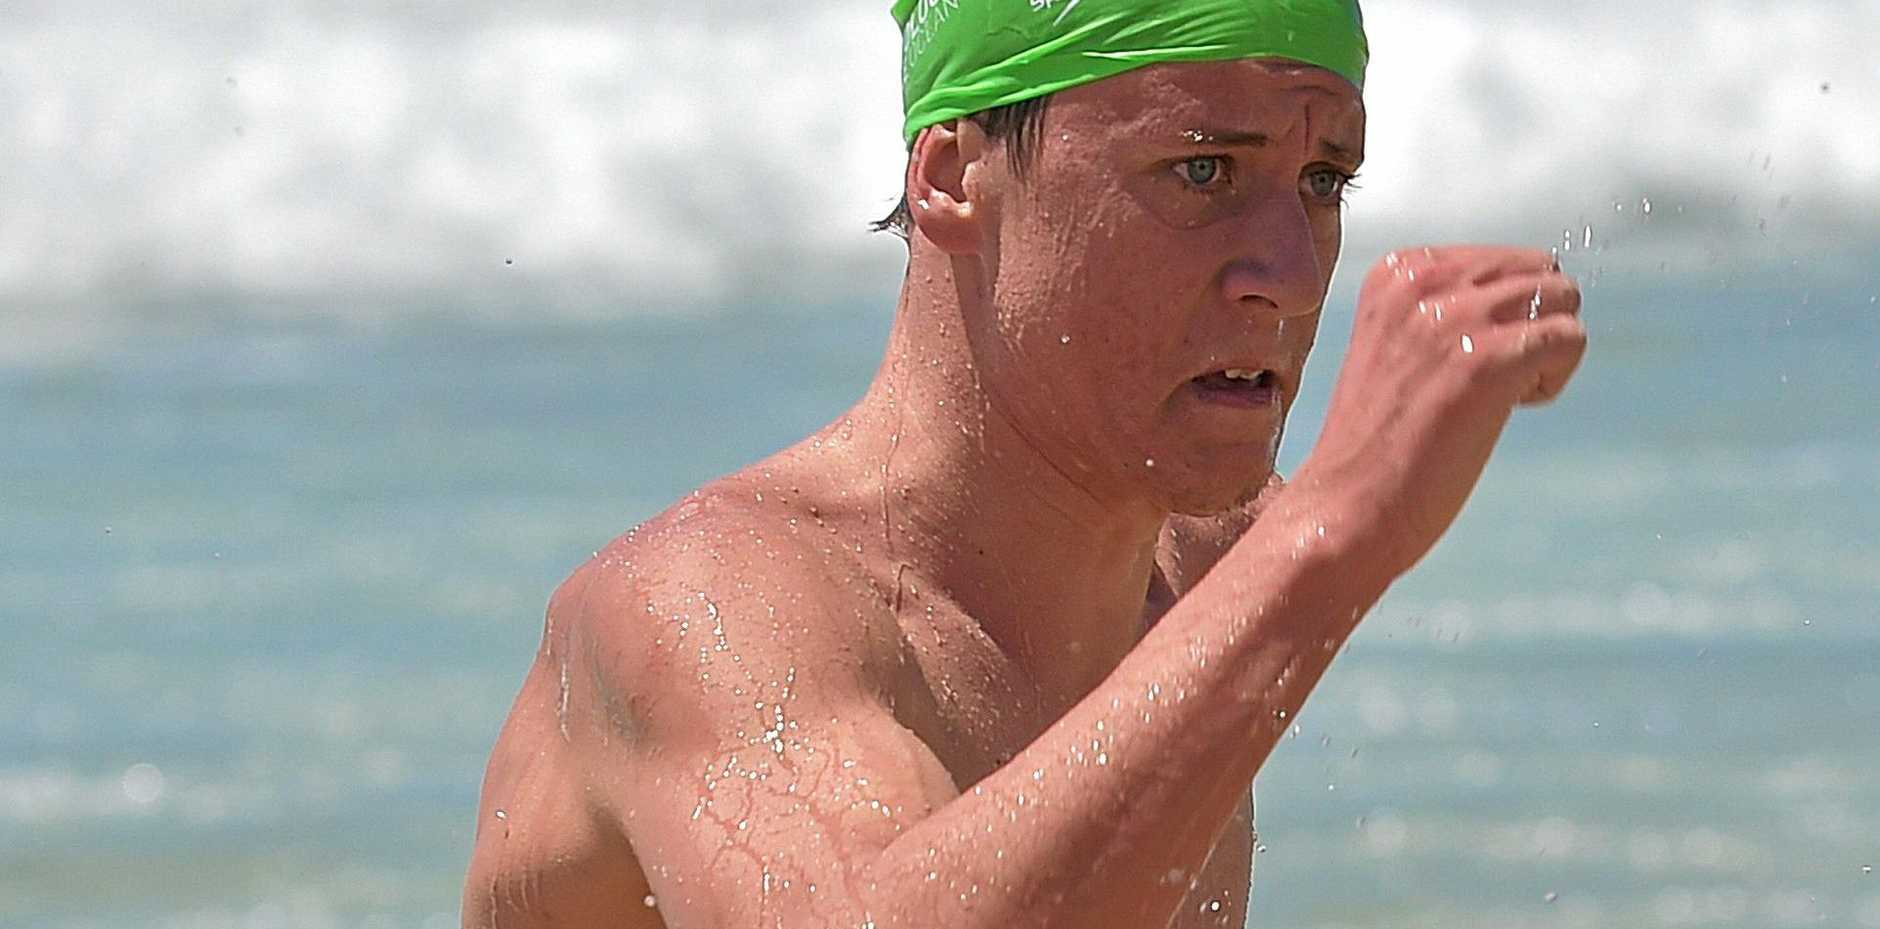 TALENTED: Nick Sloman emerges from the water after a Mooloolaba swim.